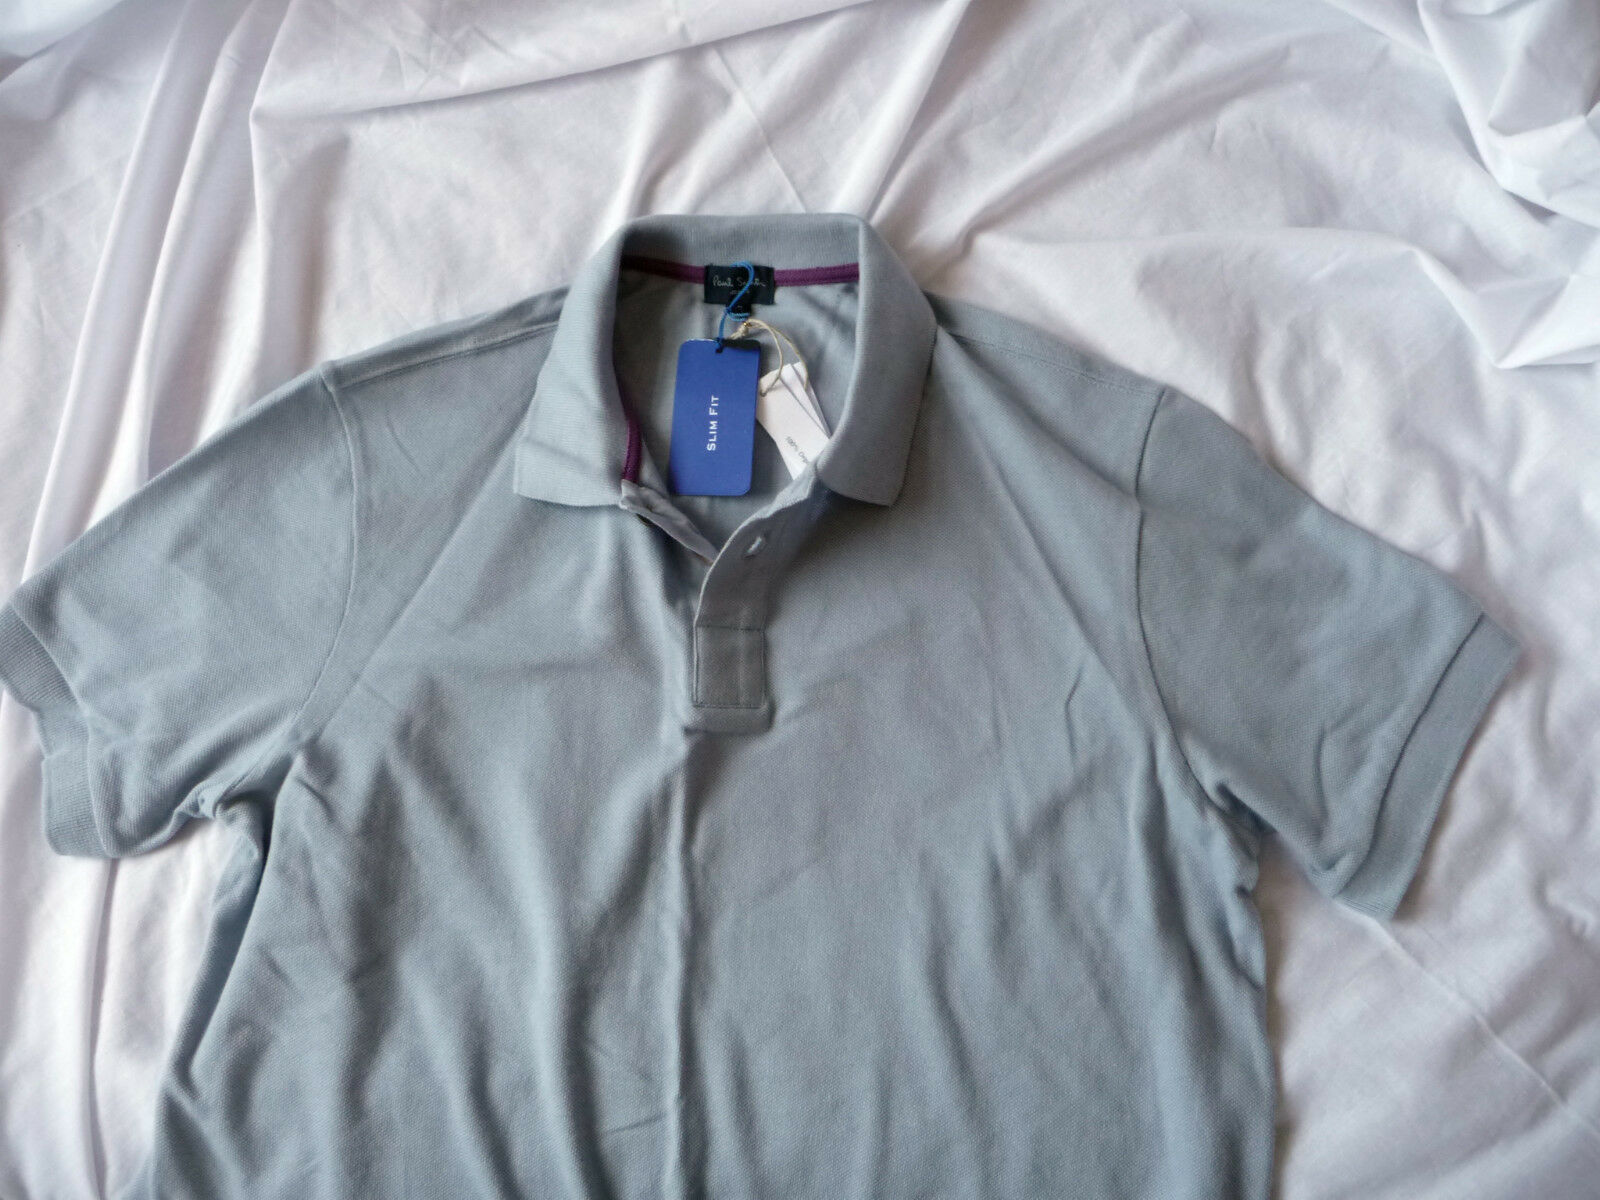 Paul Smith  Jeans   Brand new Grey POLO Shirt Size Large rrp